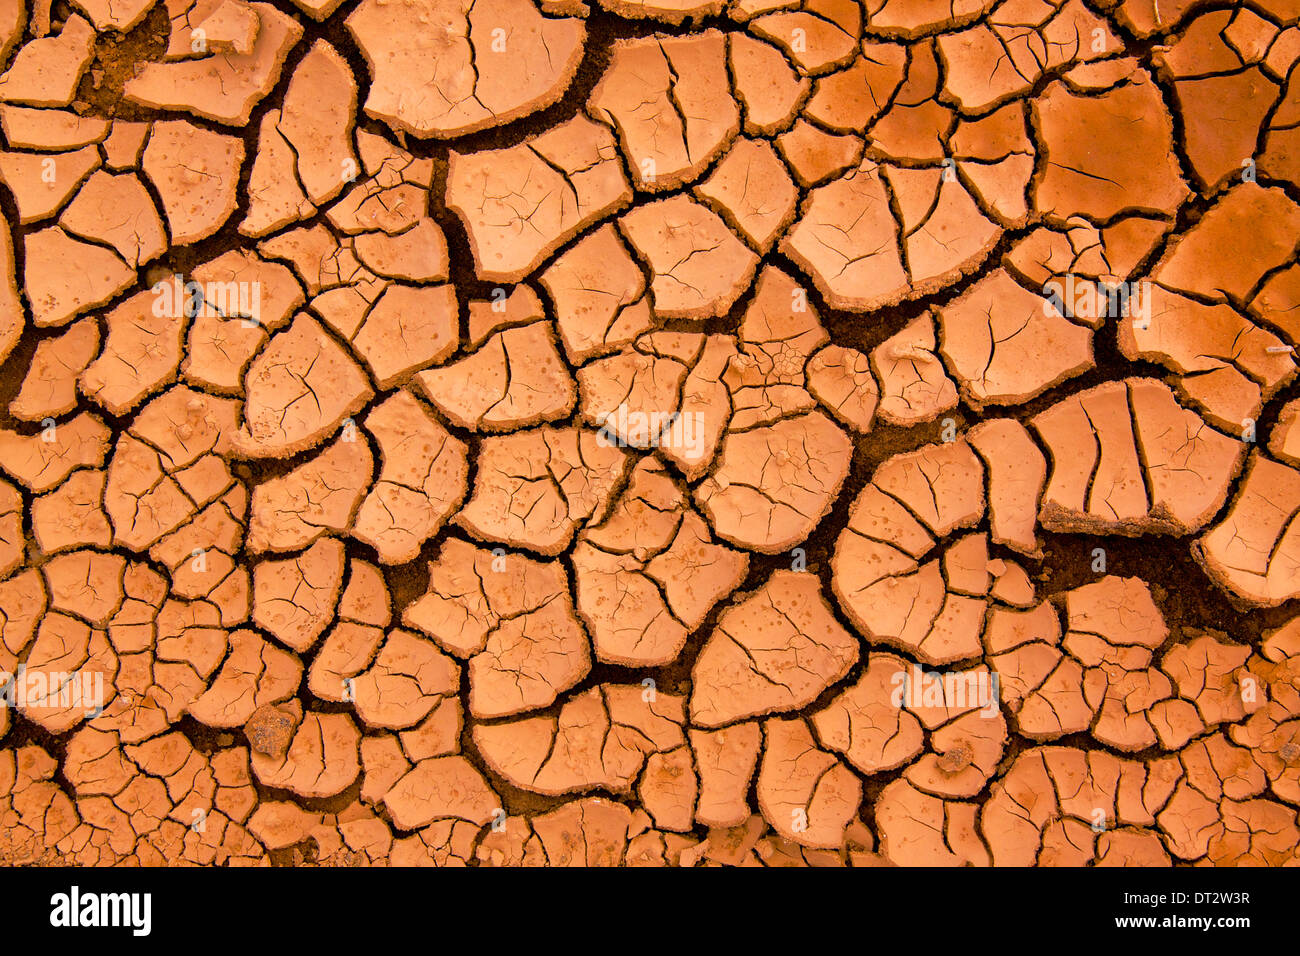 Dry red volcanic mud on island of Lanzarote, Canary Islands - Stock Image